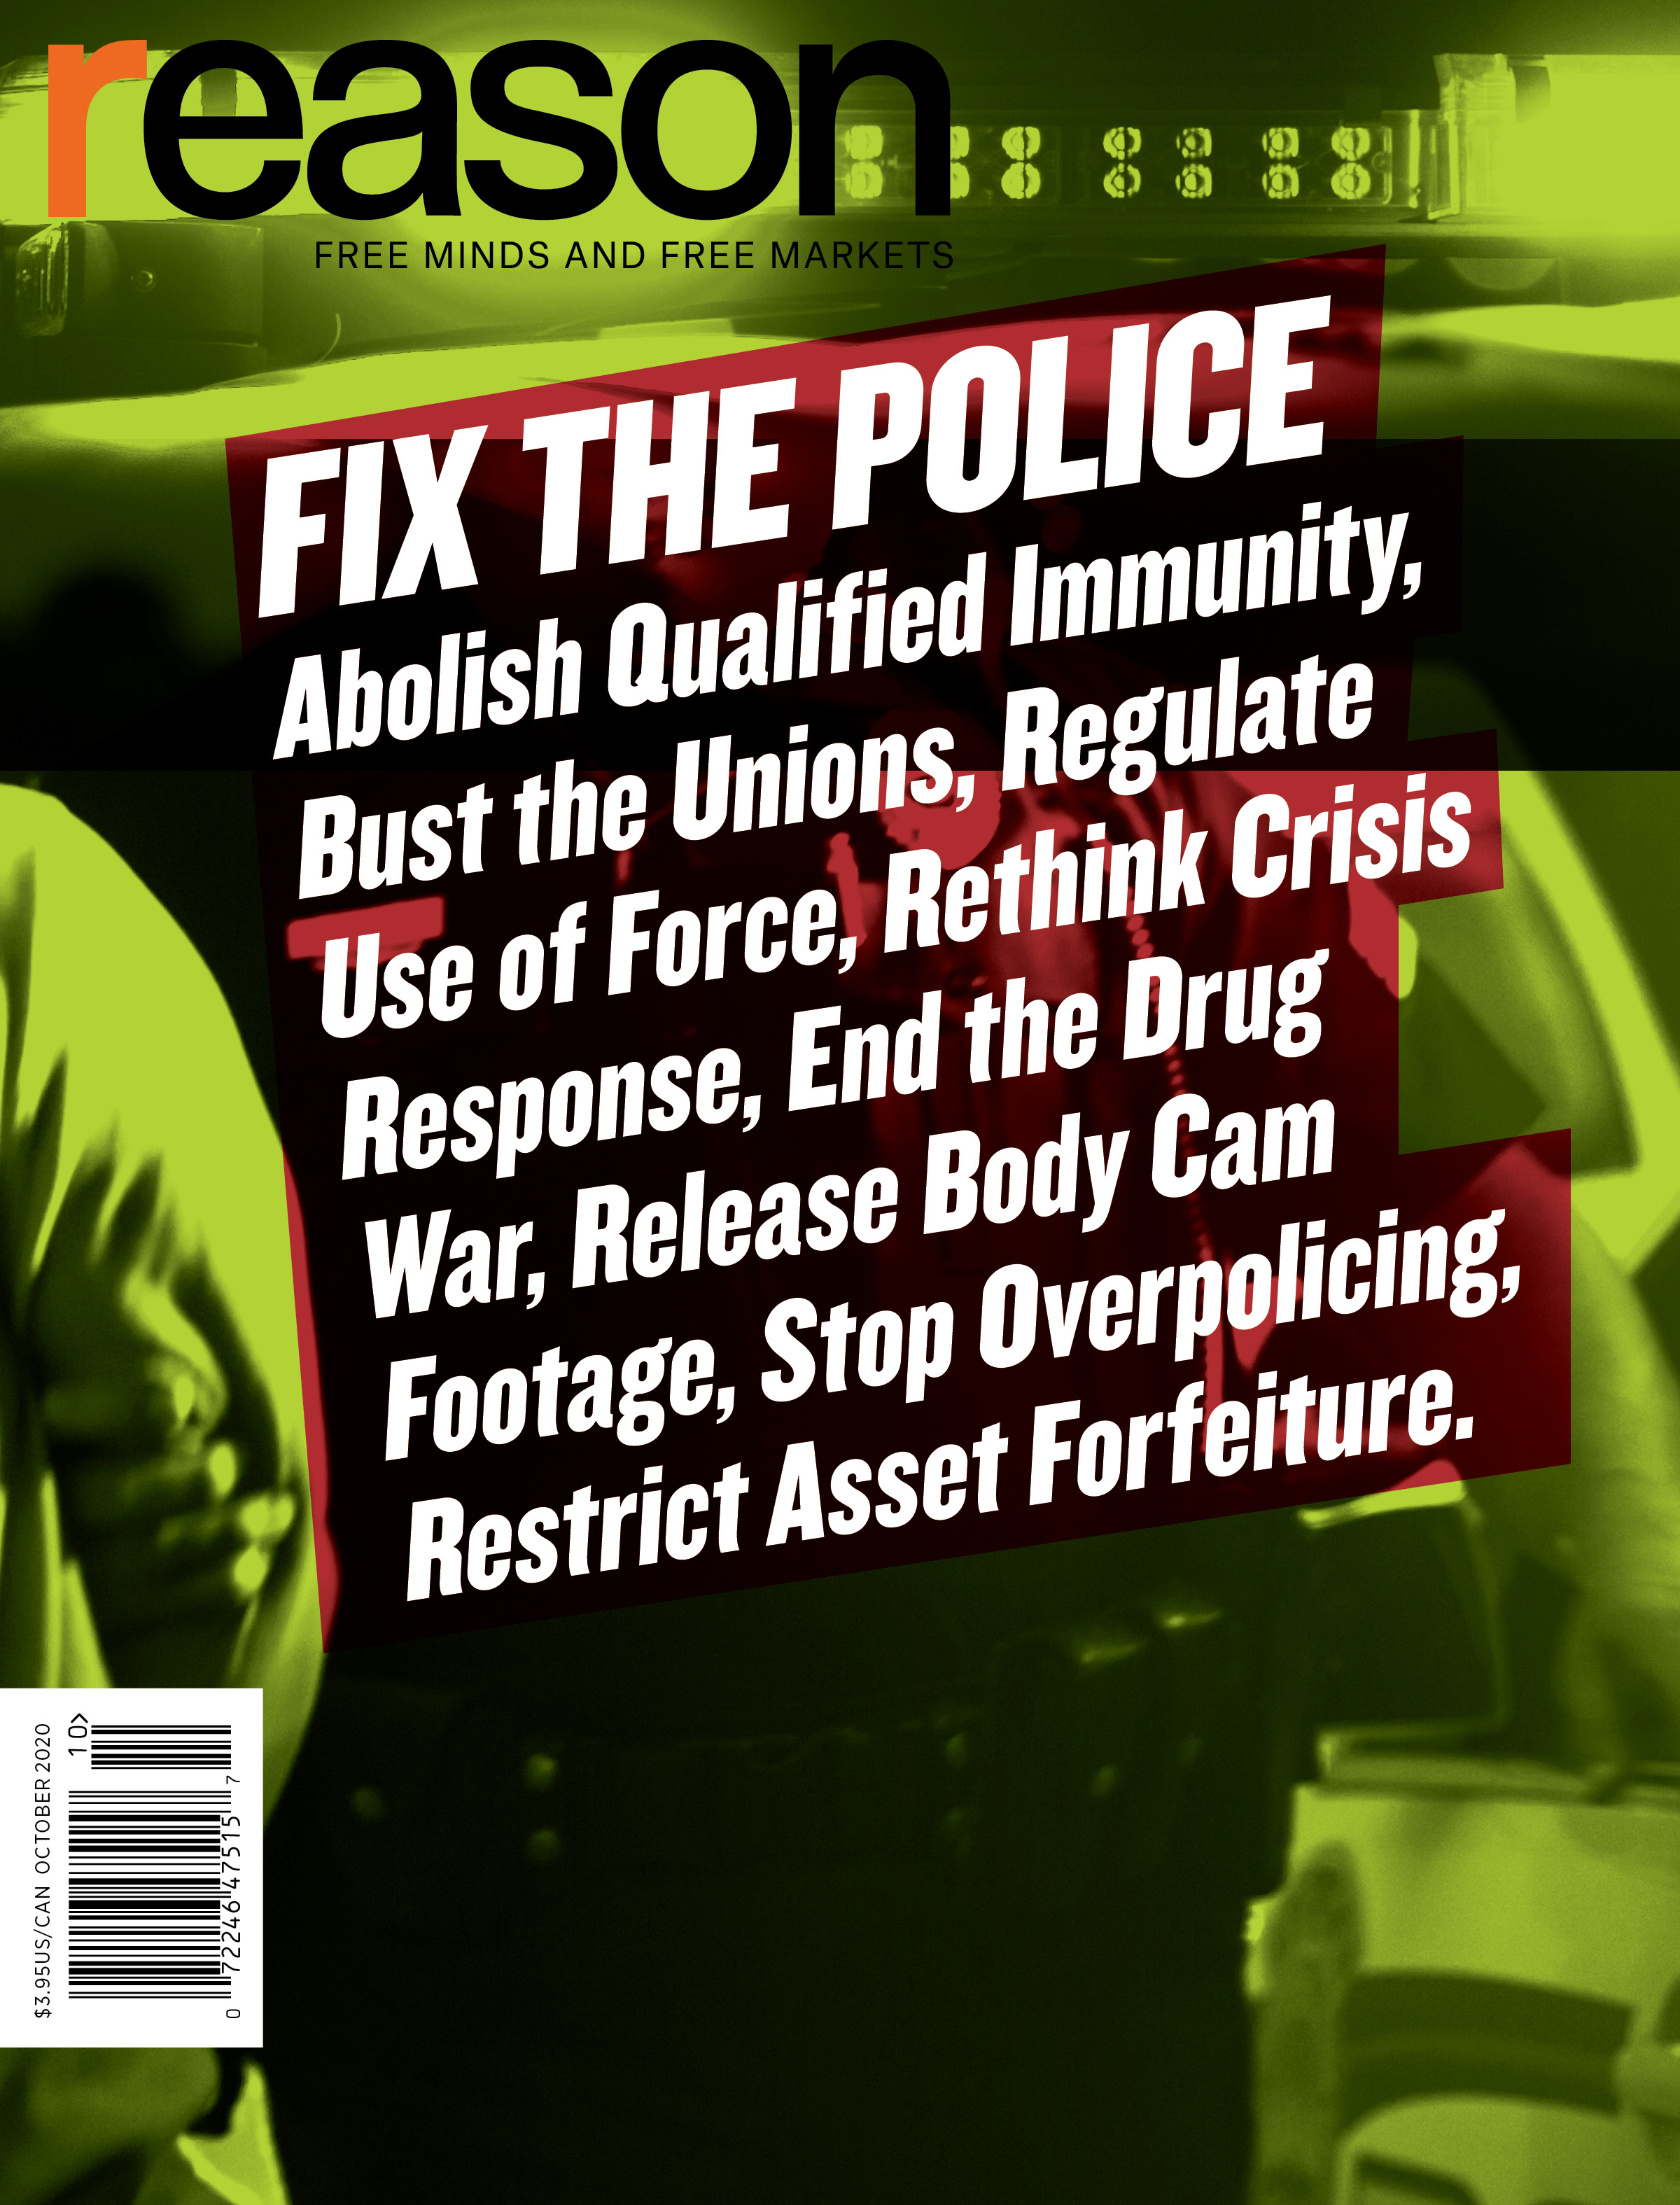 Reason Magazine, October 2020 cover image